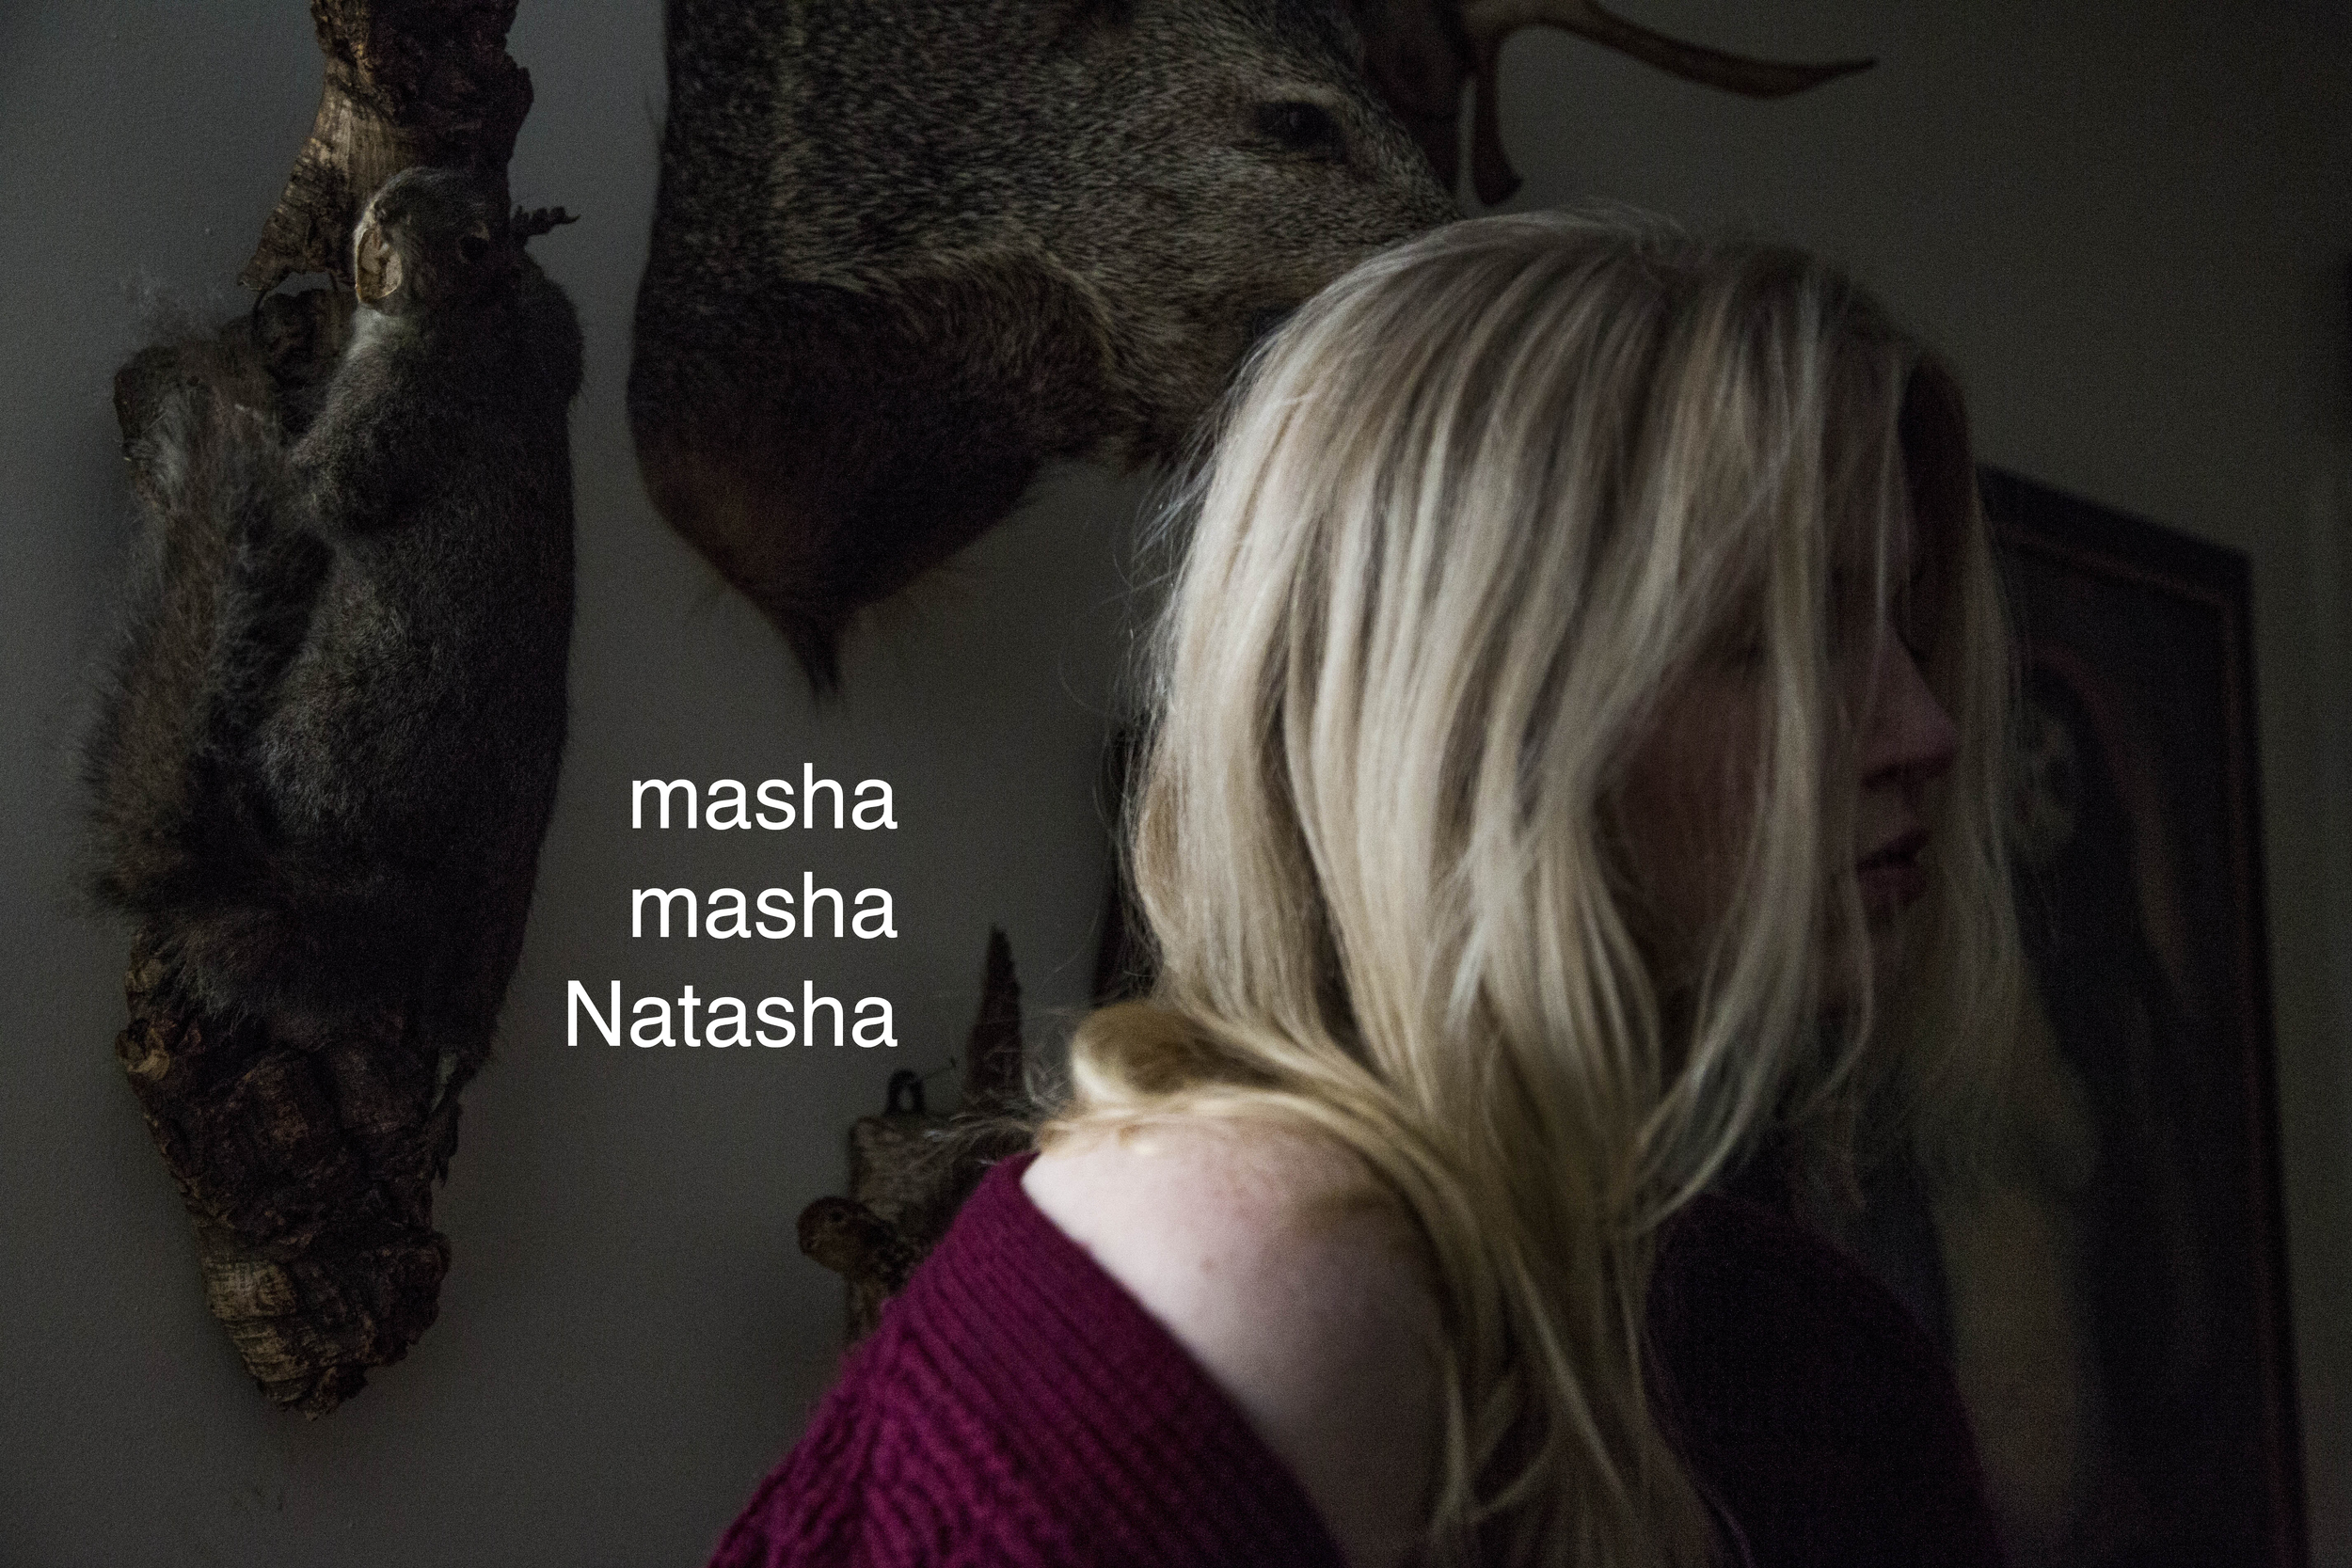 masha masha Natasha | Fringe NYC - Summer 2015. Directing a new play by Carol Brown, inspired by Chekhov's Three Sisters and Slender Man